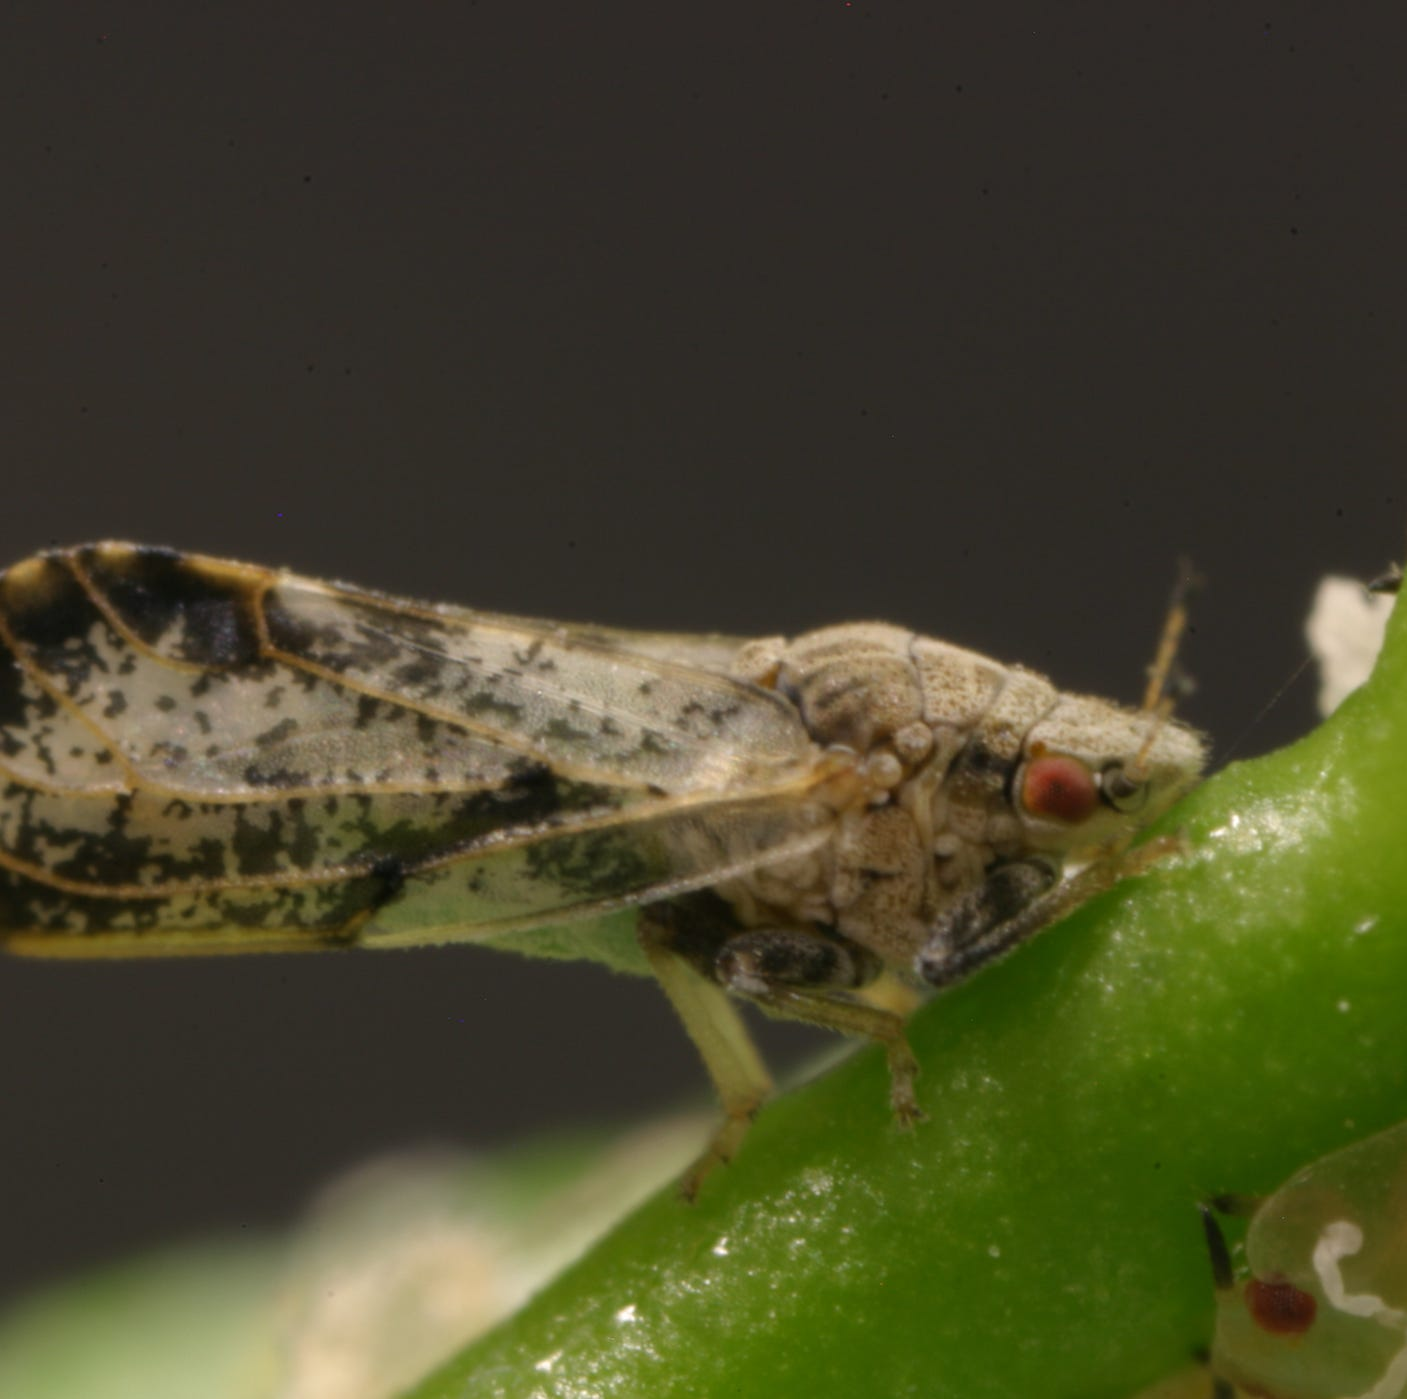 A scourge of insects could decimate Tulare County citrus, 250 psyllids found in Visalia